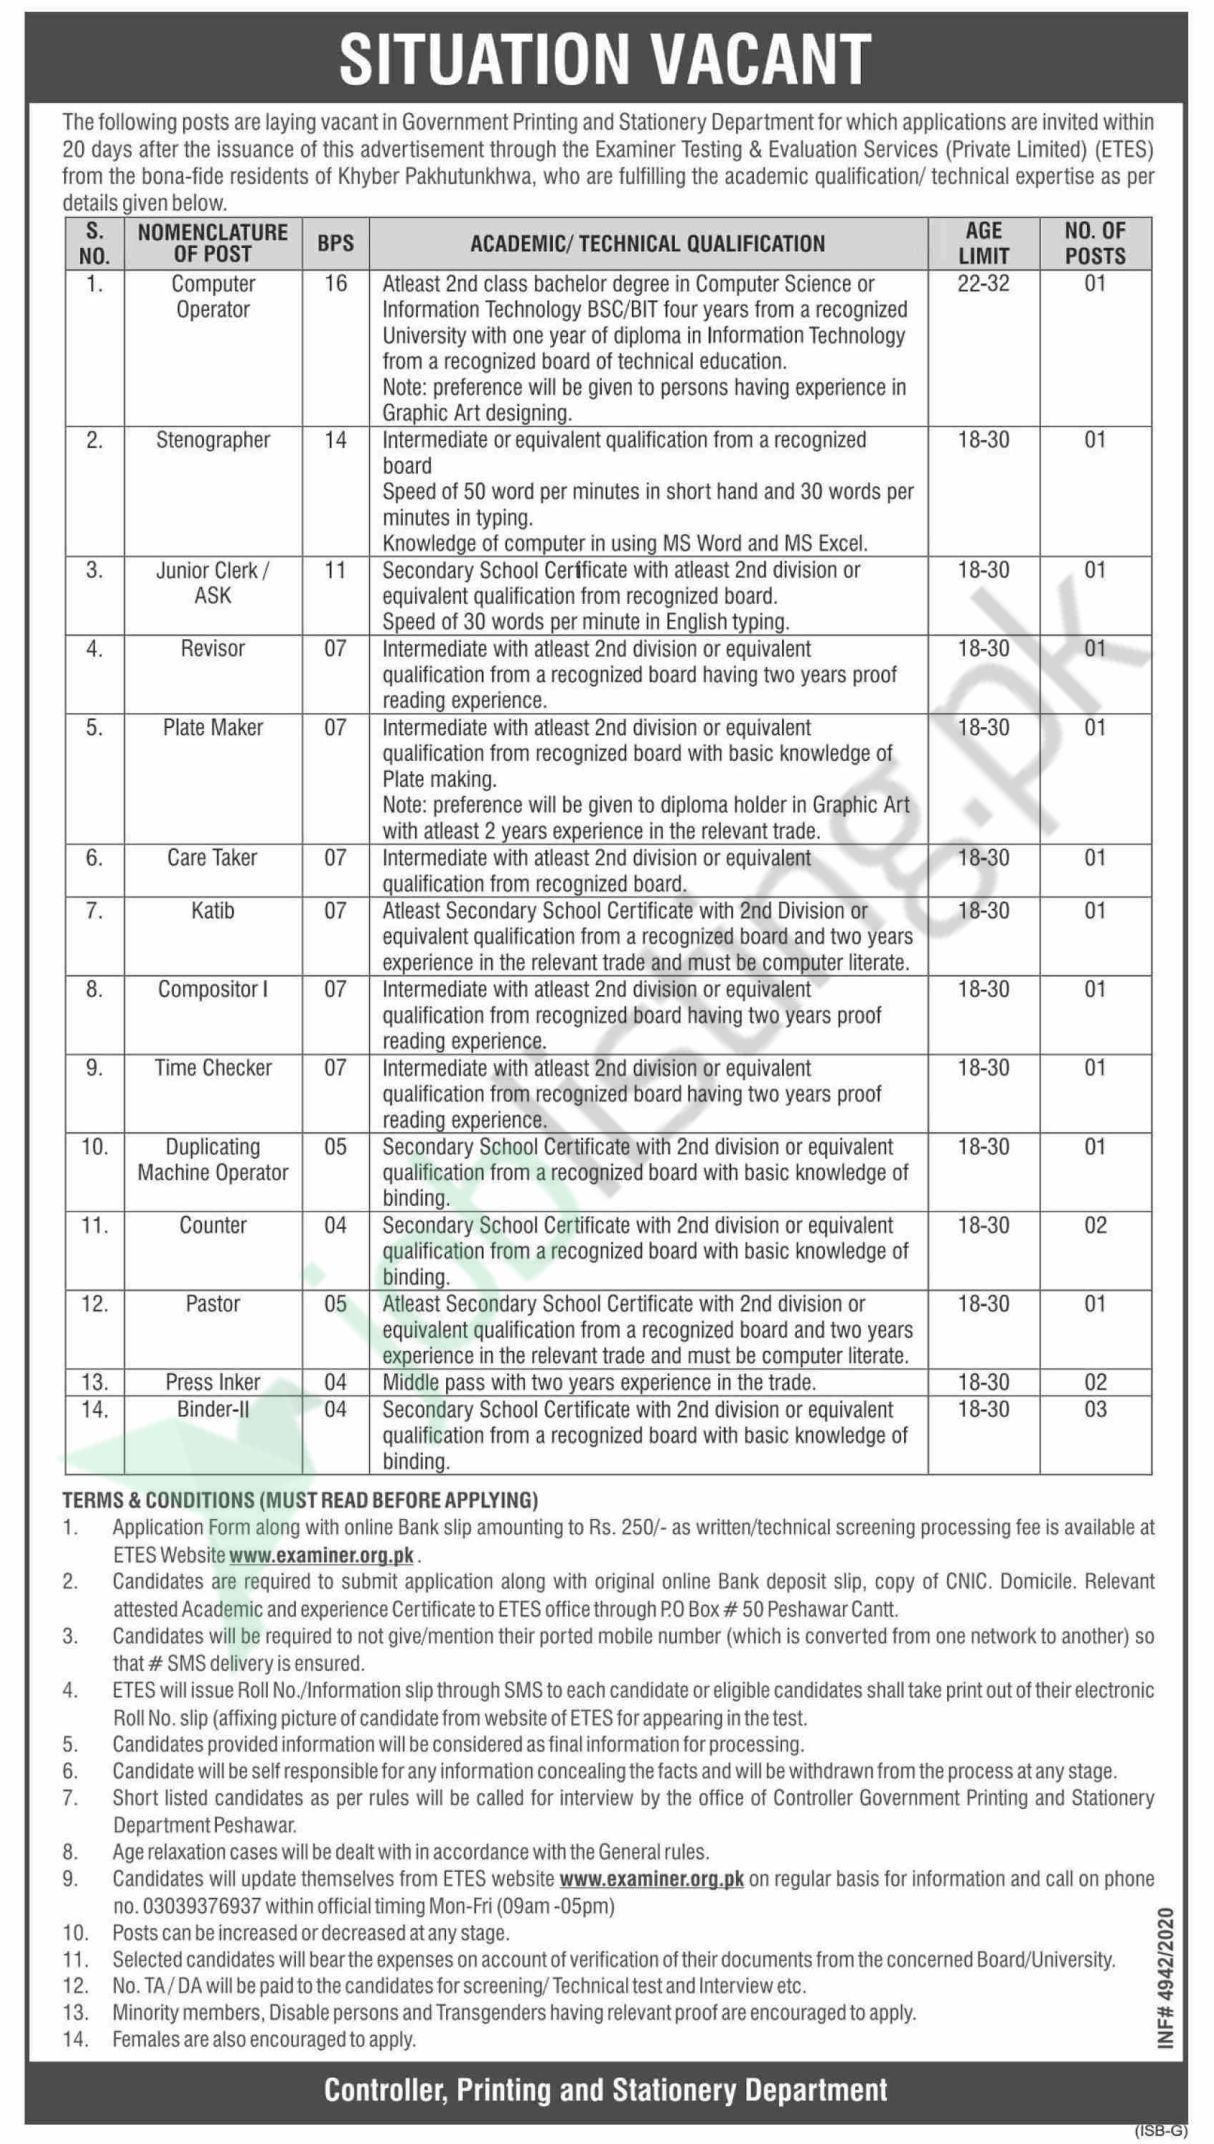 Government Printing and Stationery Department Jobs 2021